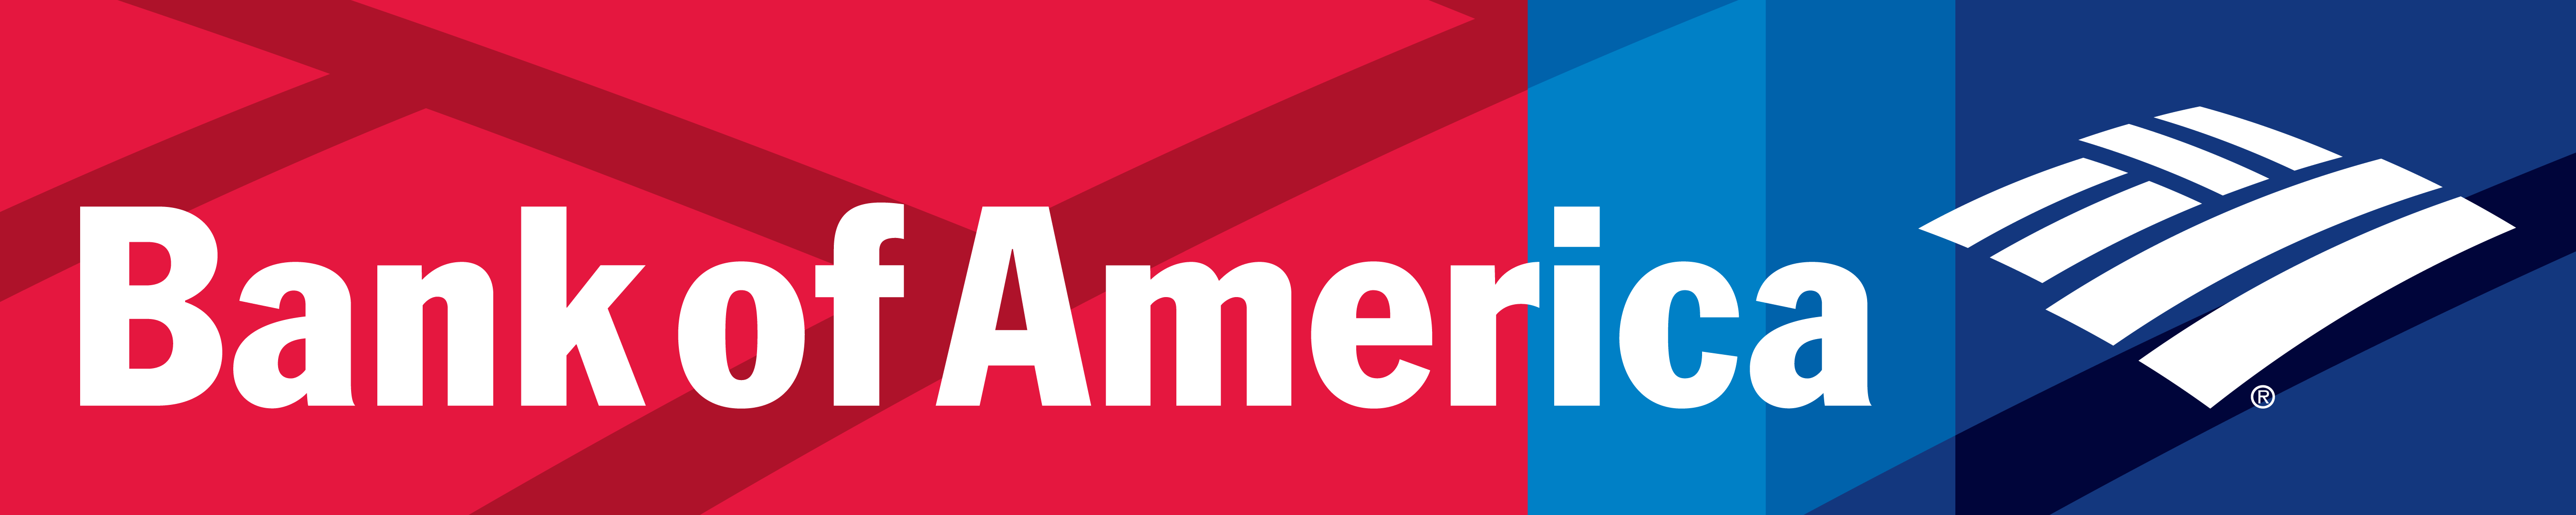 Bank-of-America-full-color-background-horizontal-2014